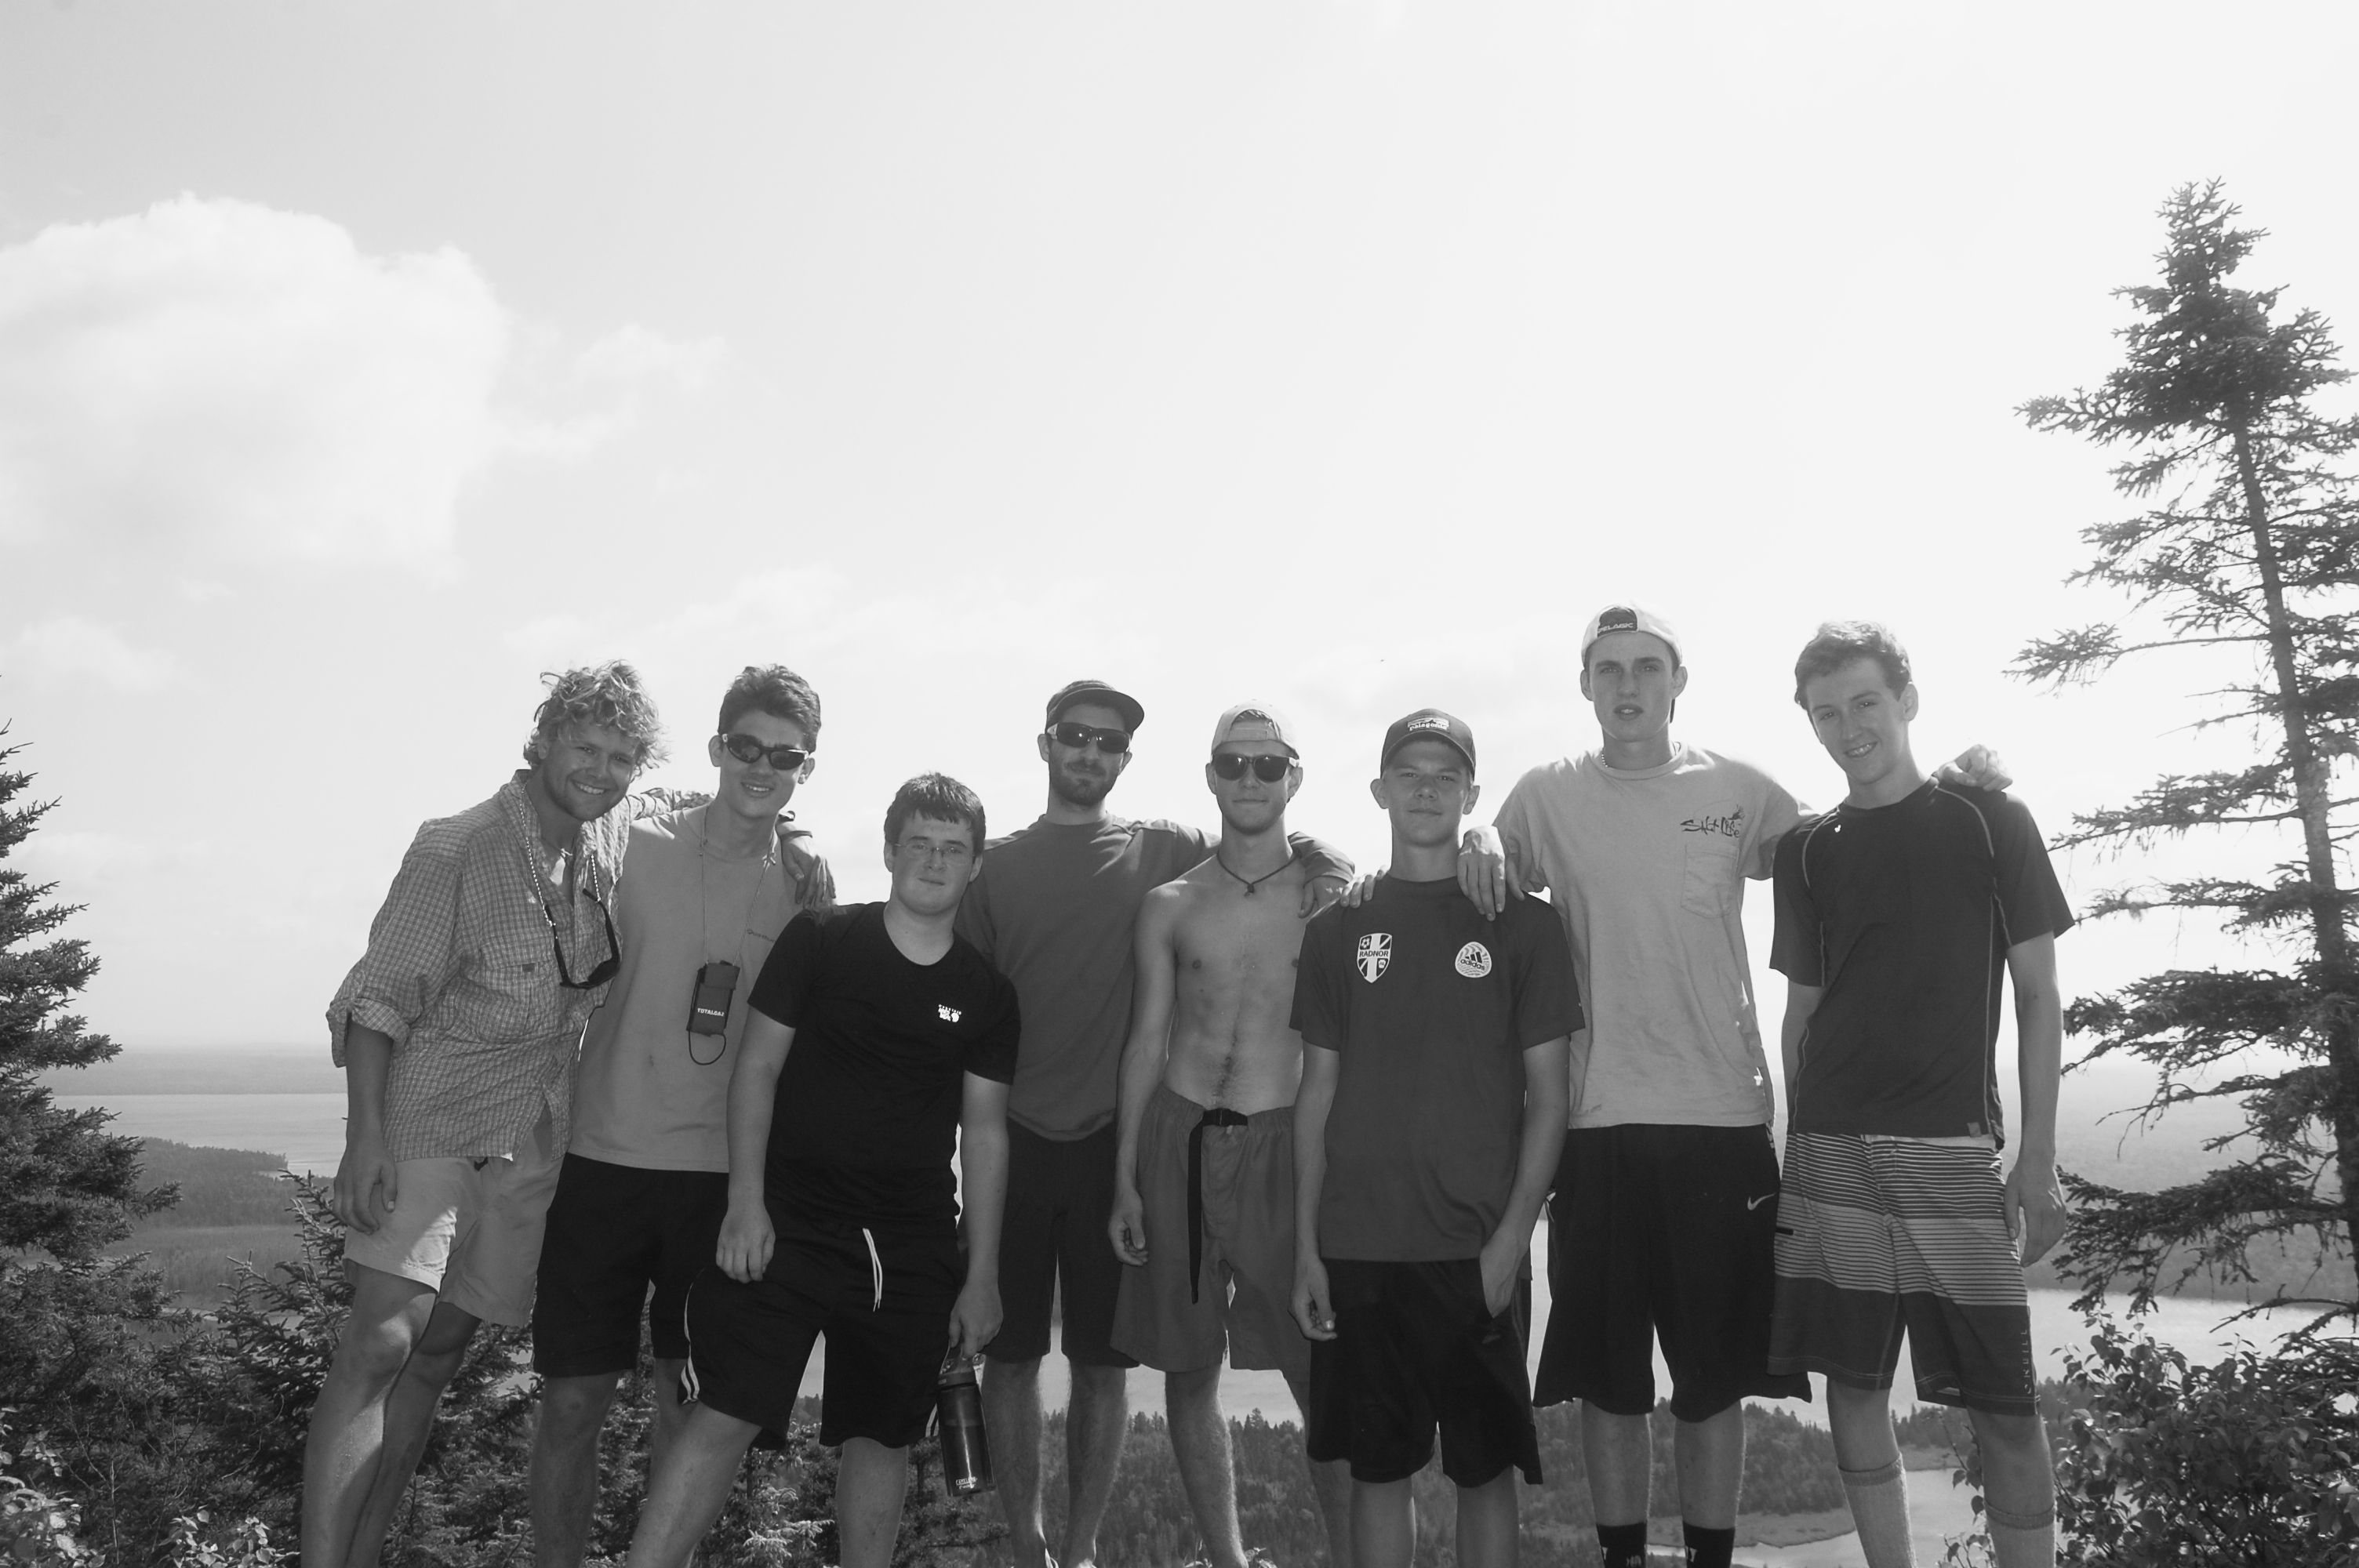 2013 Expedition Campers and Leaders: Sumner Ford, Alex, Tommy, Ben Schachner, Byron, Justin, Gray, and Noah.